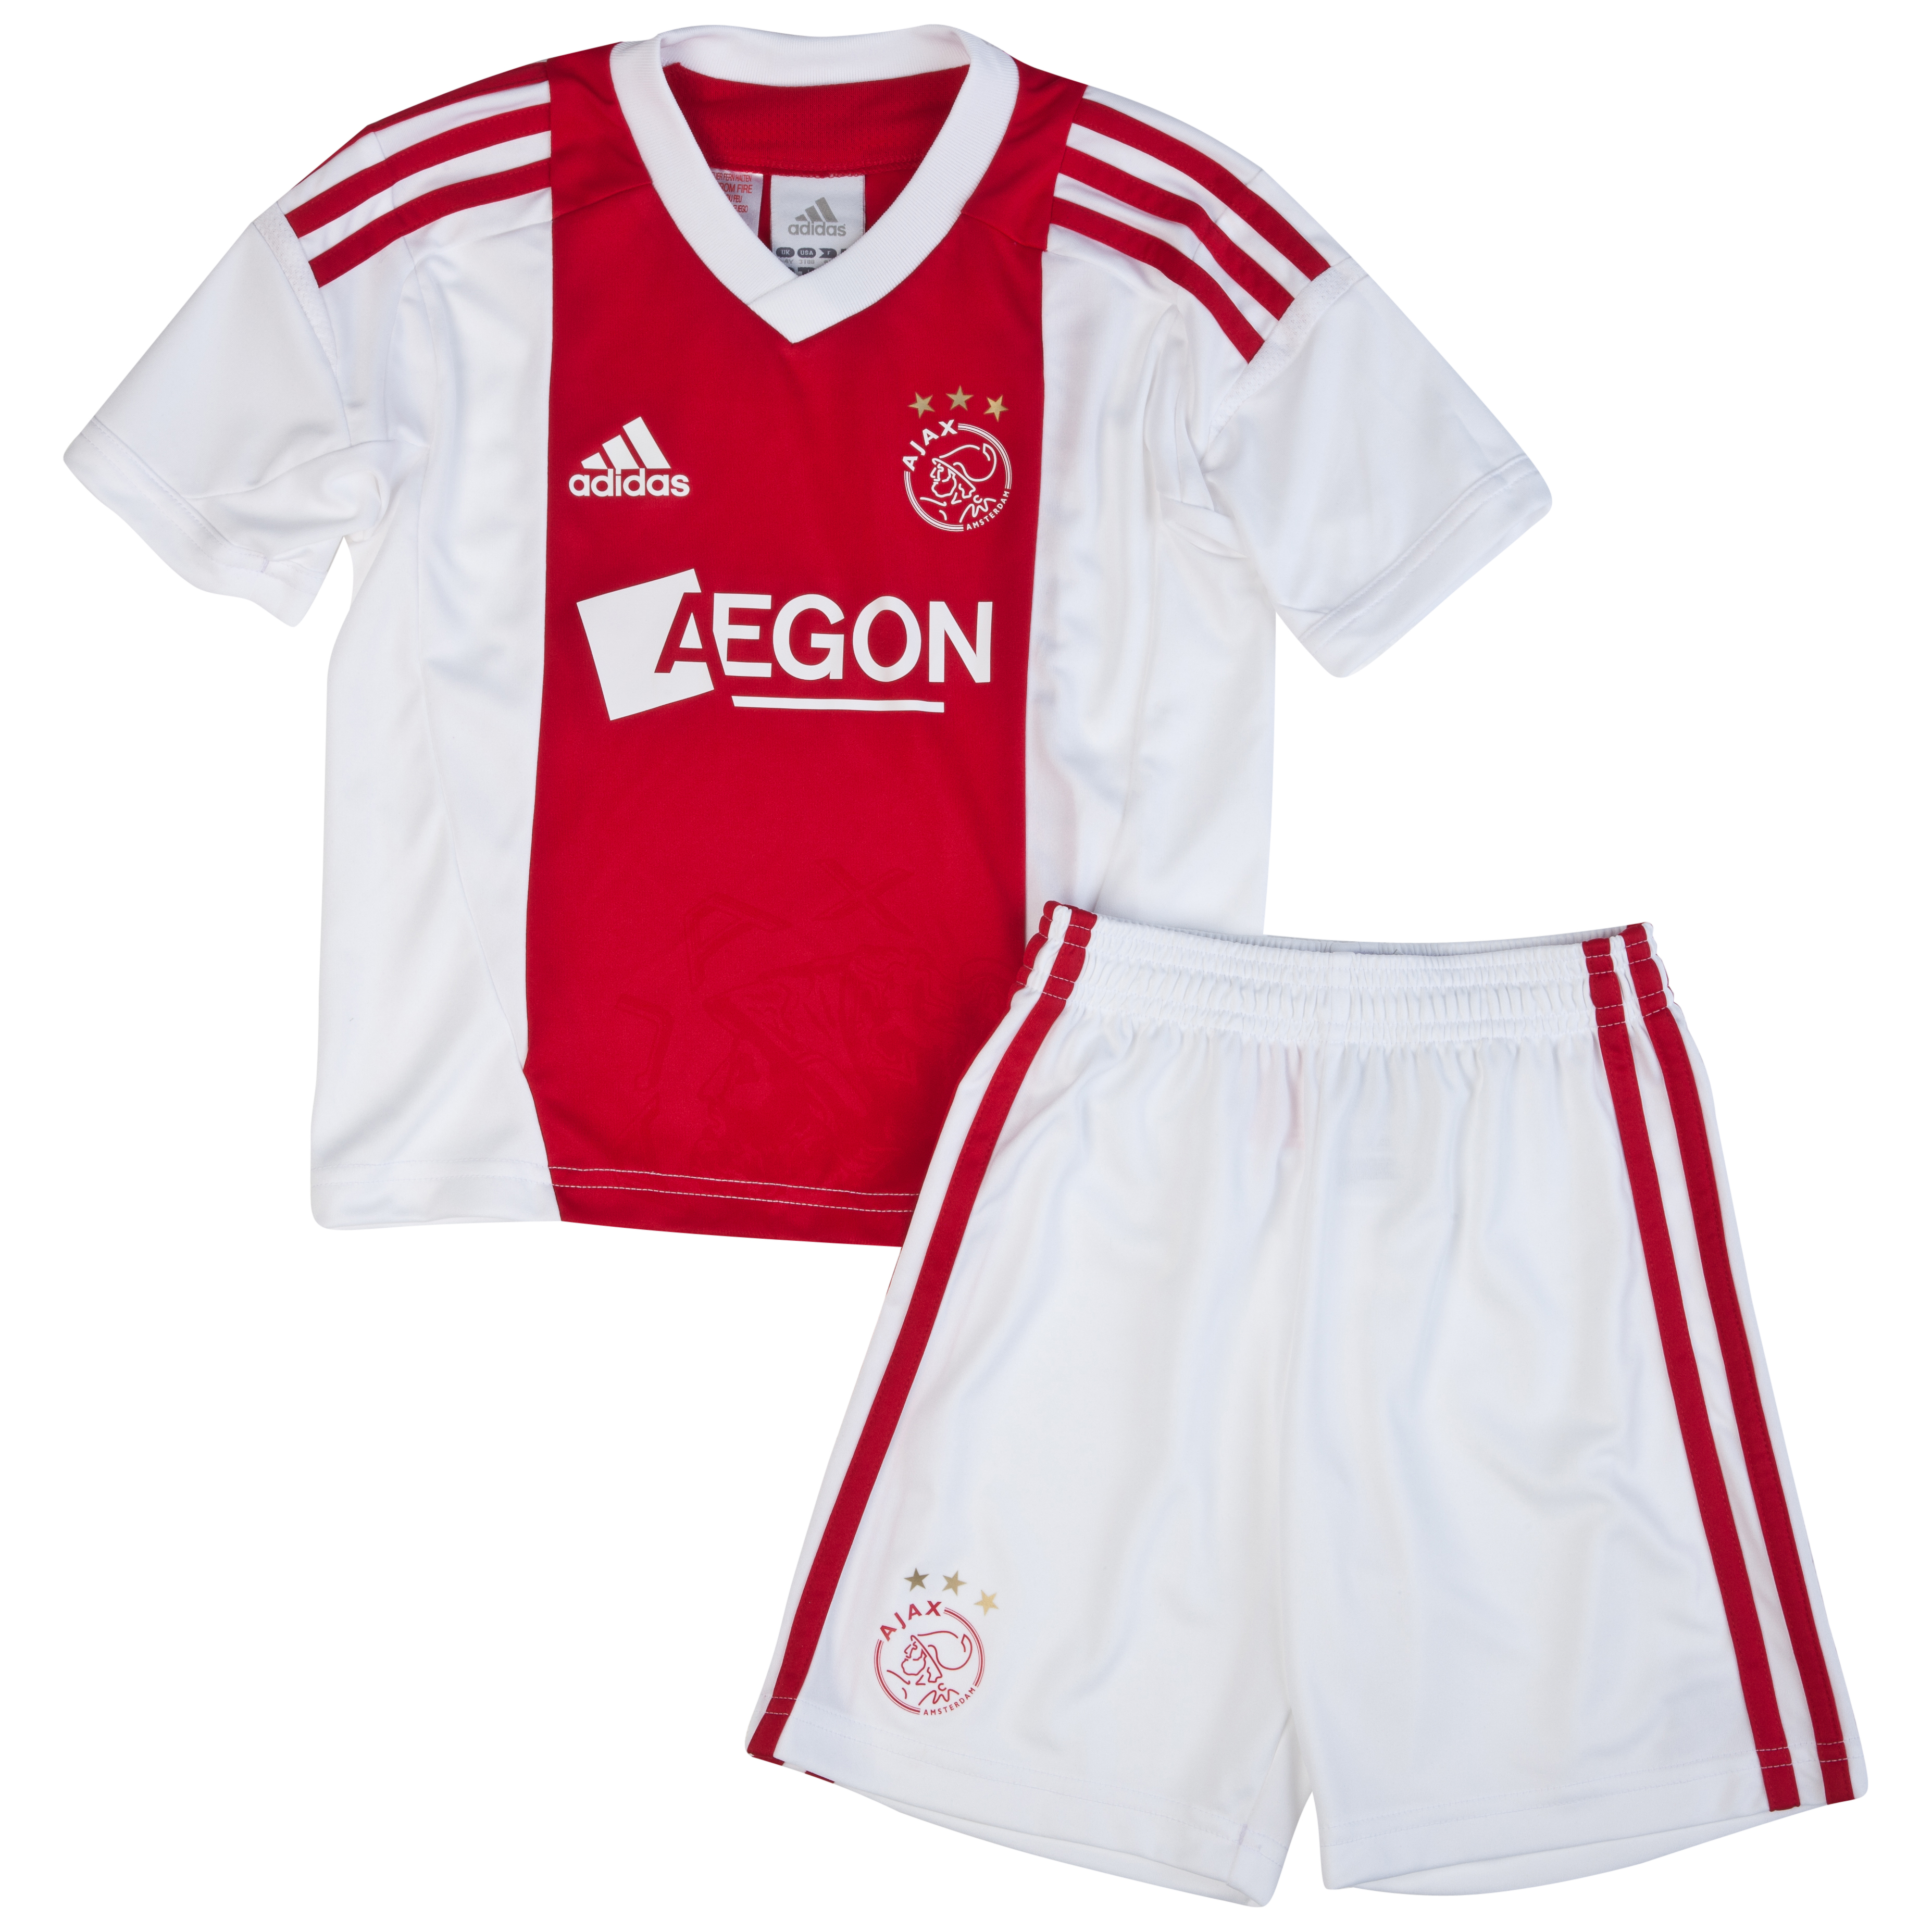 Ajax Home Minikit 2012/13